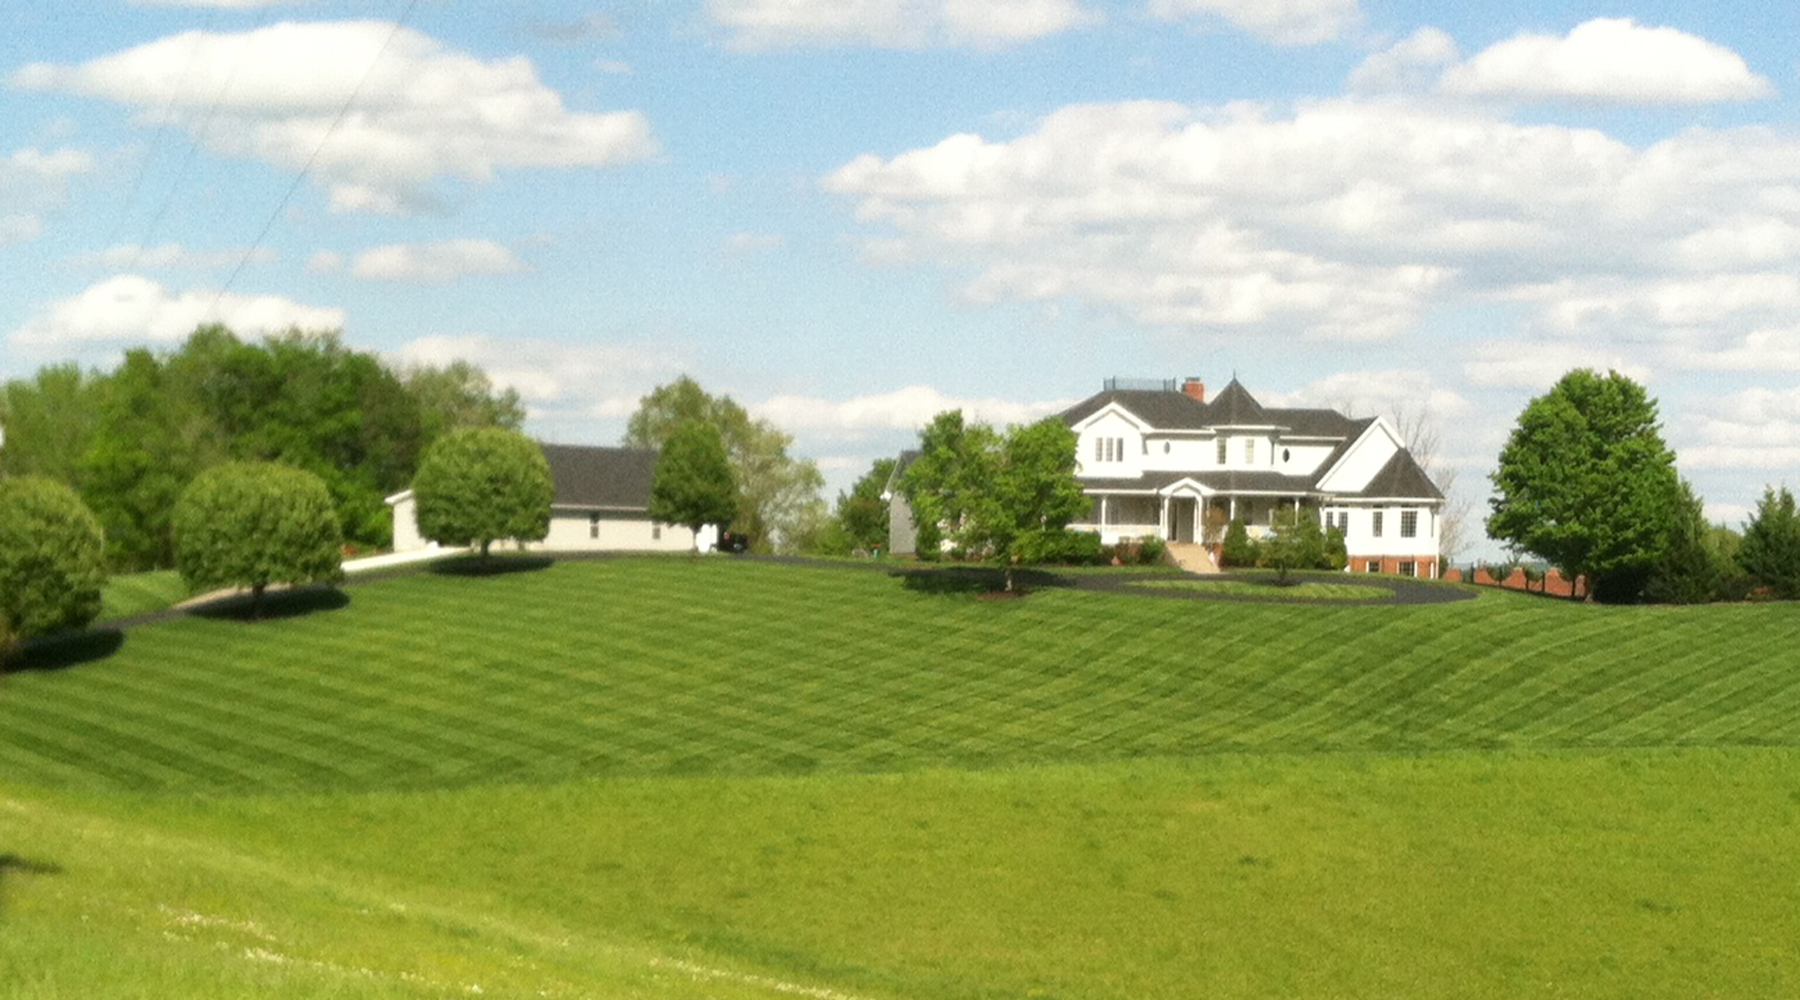 Picture of a large house on a hill with diamond patterns cut into the grass.